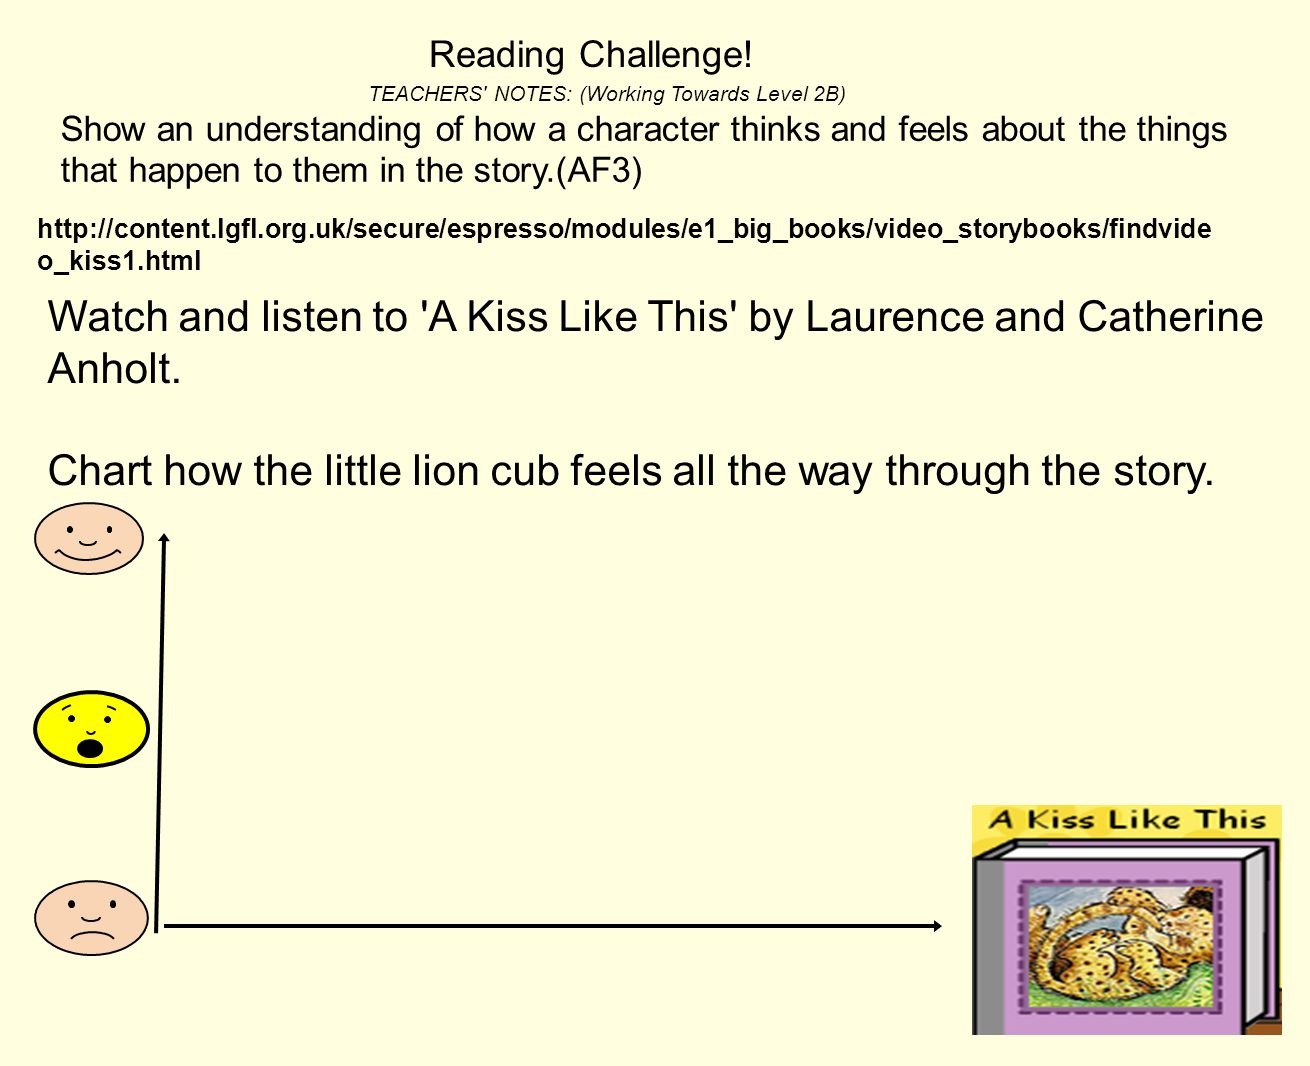 Show an understanding of how a character thinks and feels about the things that happen to them in the story.(AF3) Reading Challenge.